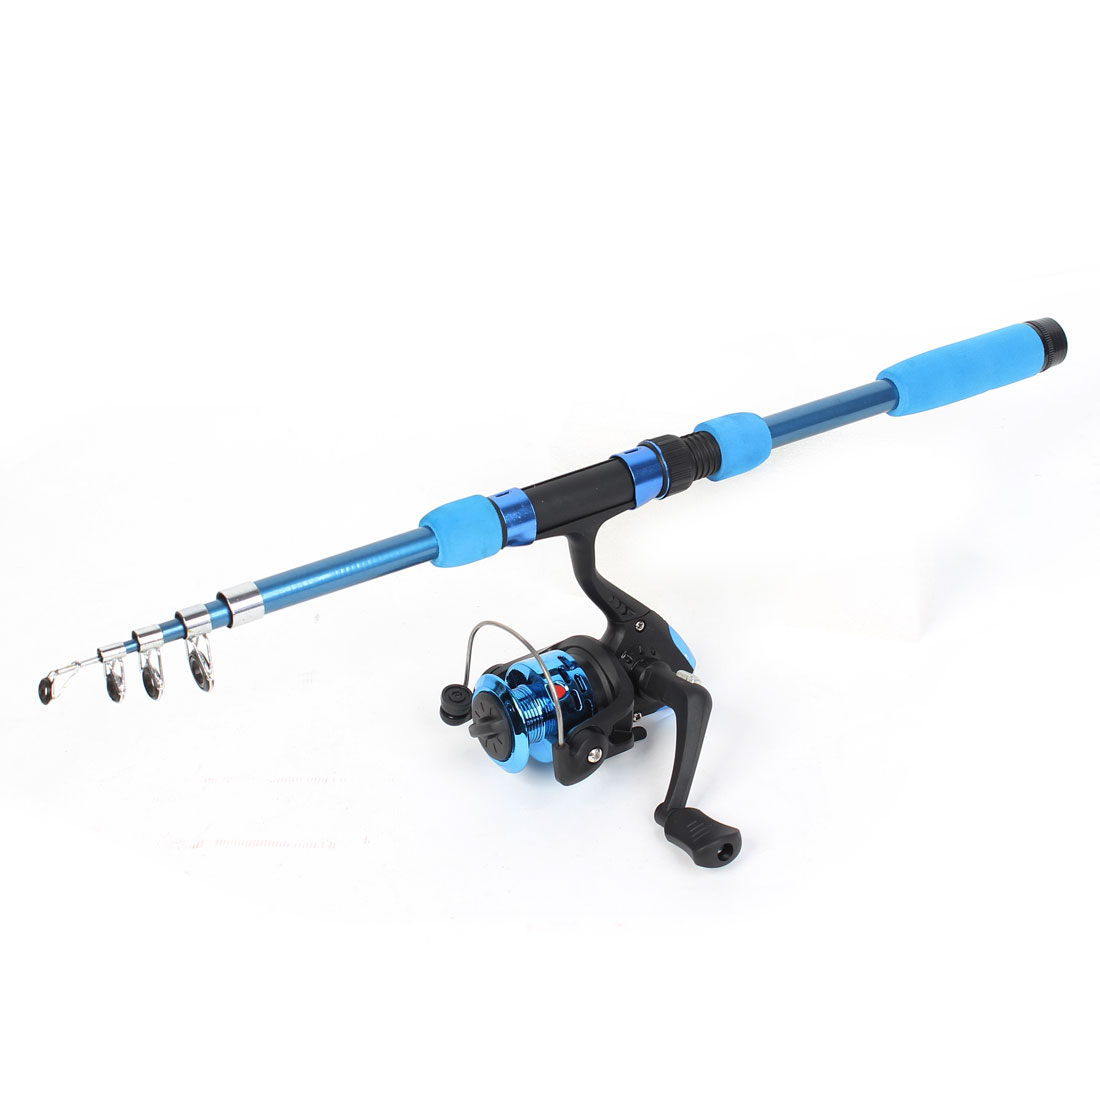 1.65M Length 5 Sections Retractable Fishing Rod w Fish Spinning Reel